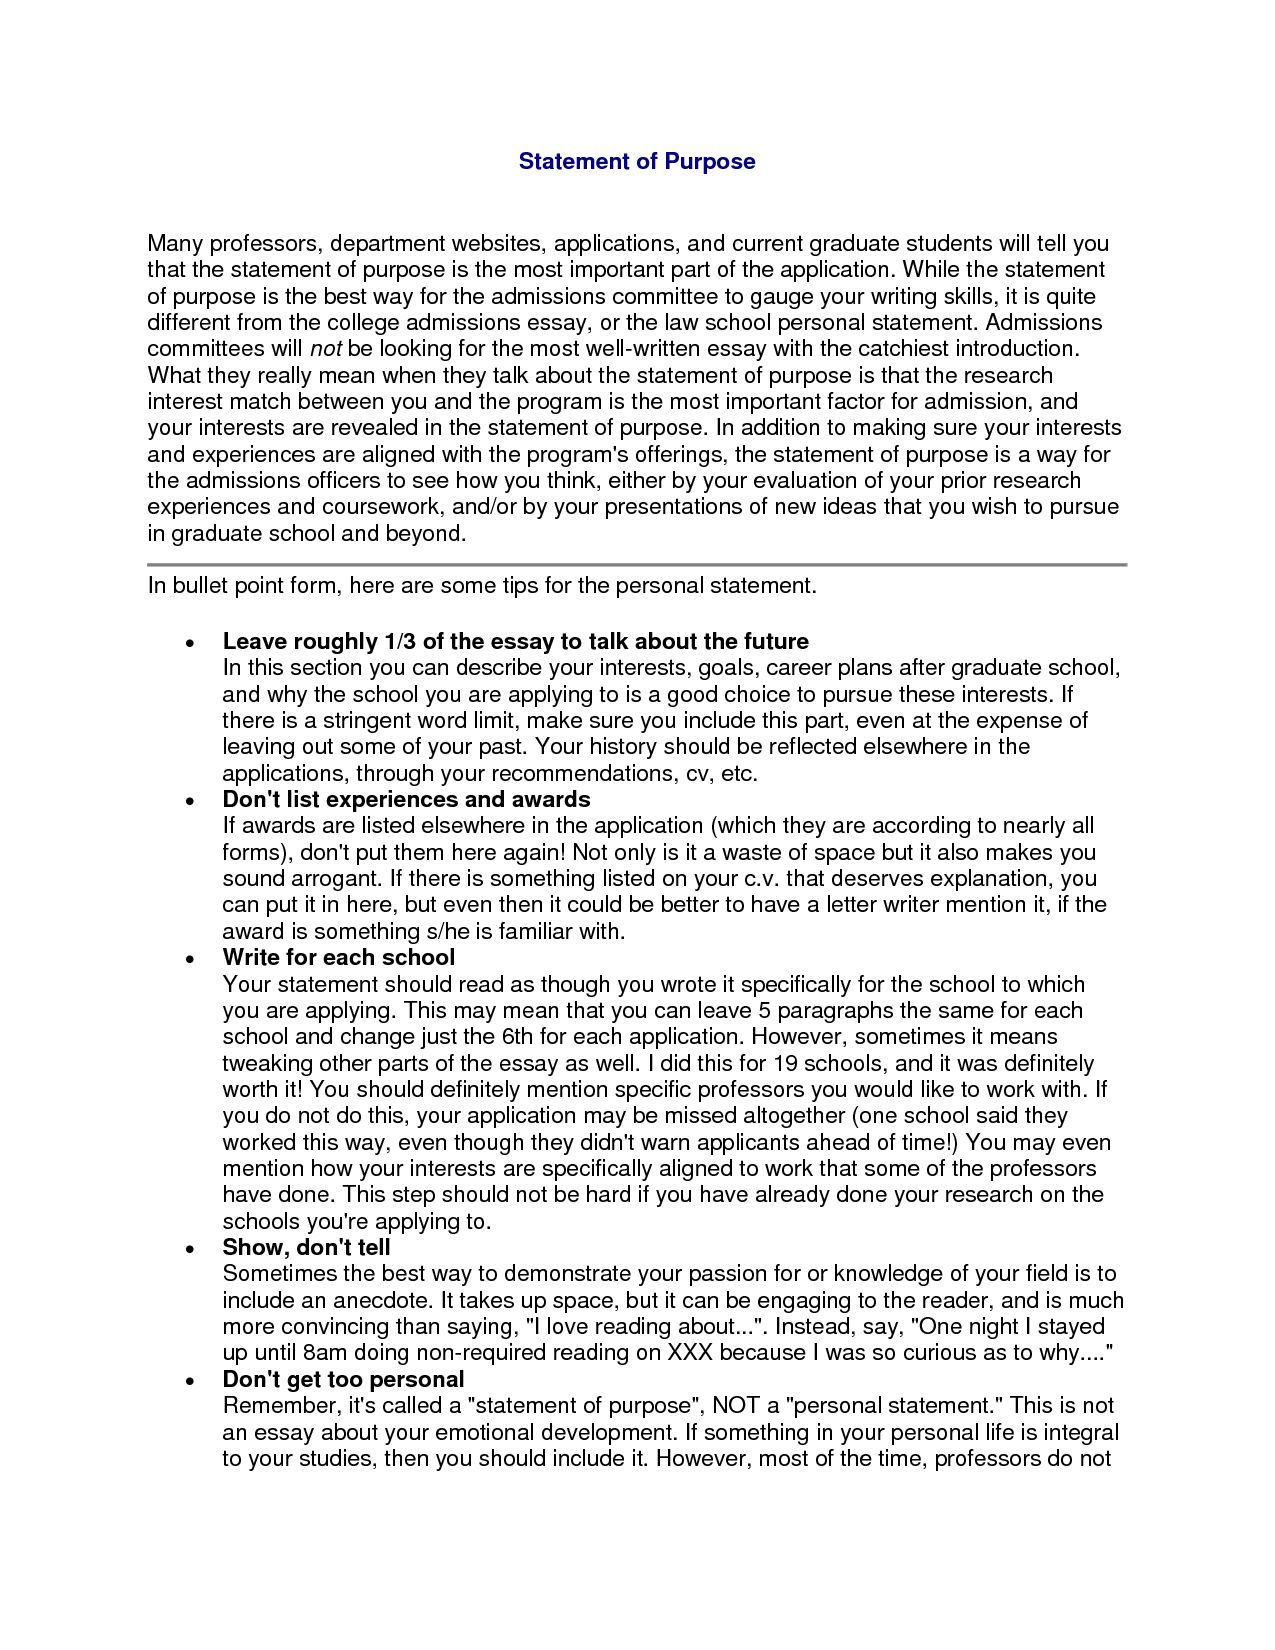 Professional Goal Statement For Nursing Graduate School Example Essay Admission What I A Personal